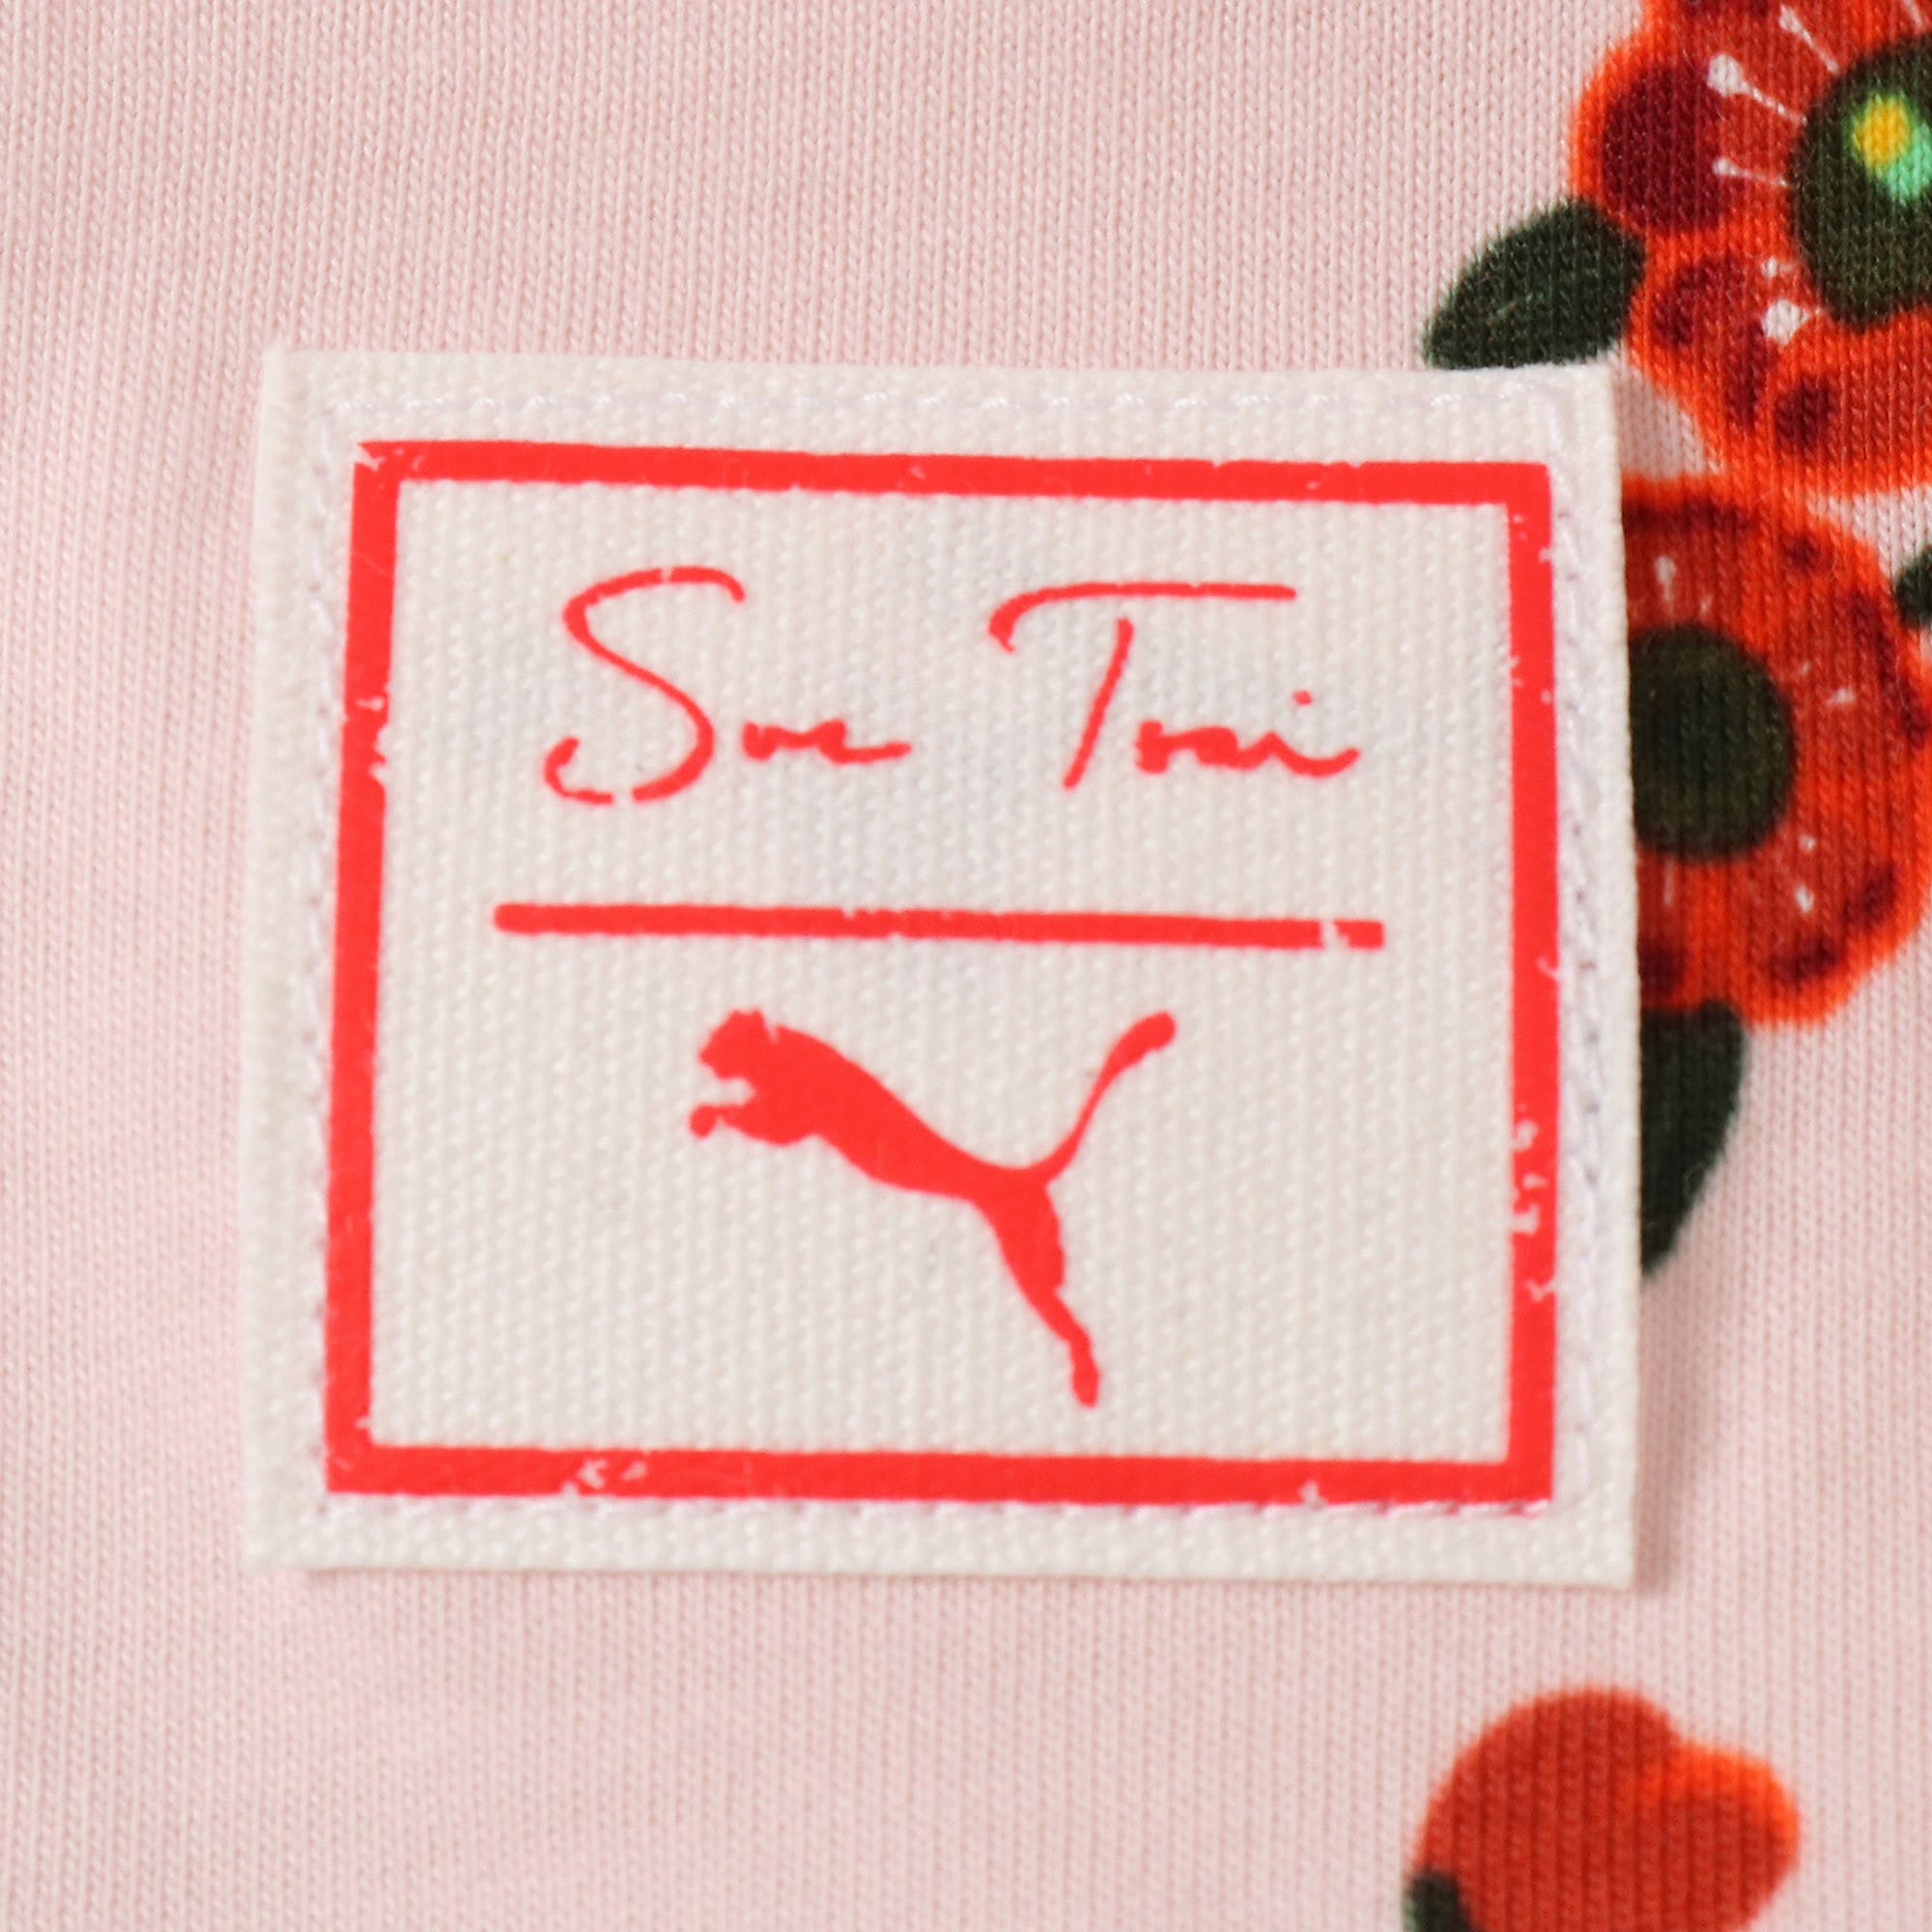 Thumbnail 9 of PUMA x SUE TSAI ウィメンズ  Tシャツ, -- Cherry Blossom AOP, medium-JPN